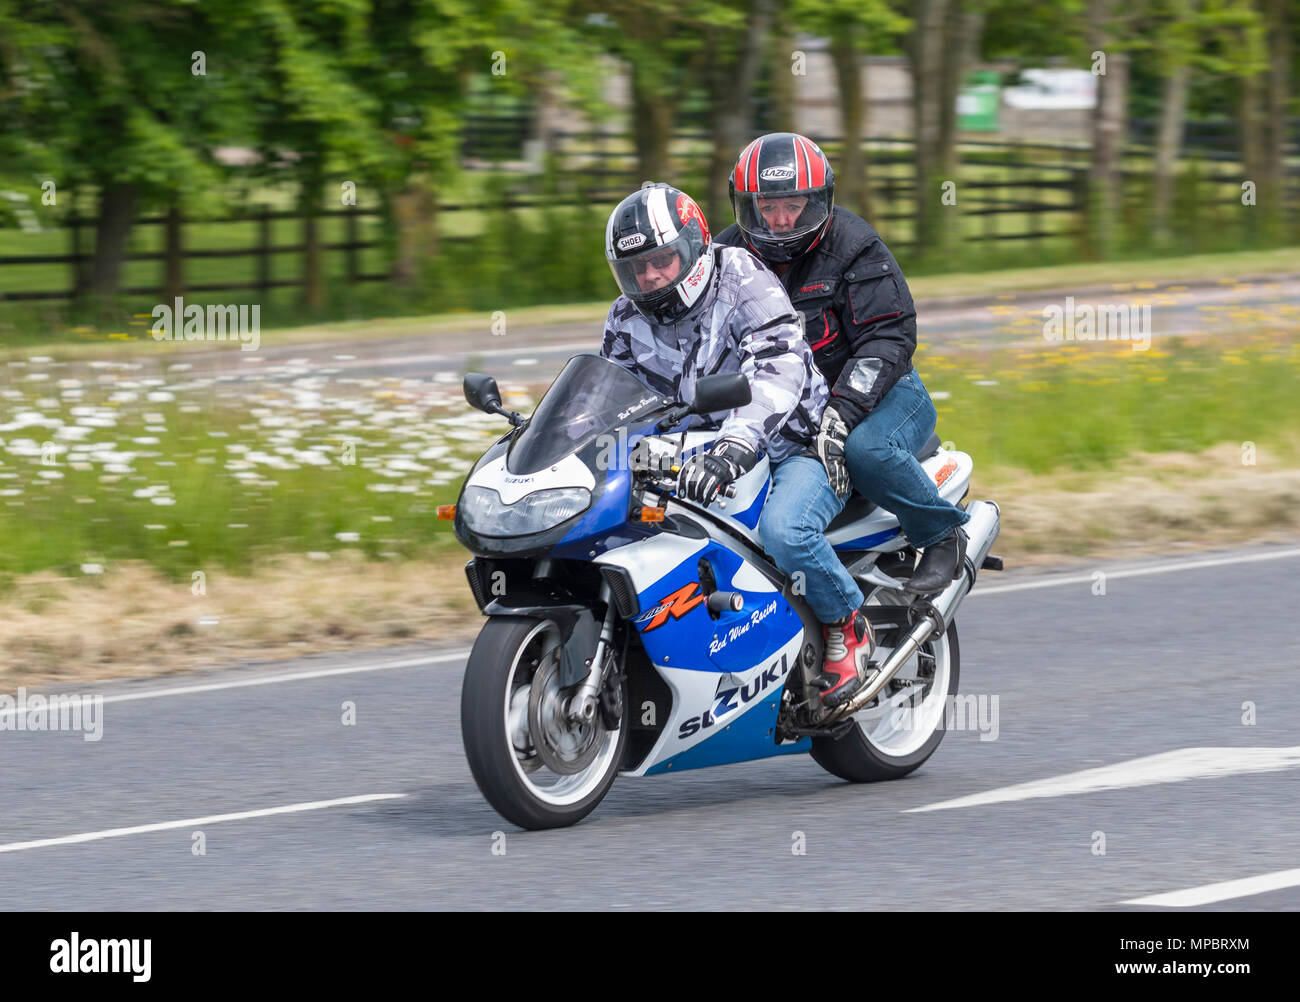 Suzuki Tl1000r Motorcycle A Racing Superbike With A Pillion